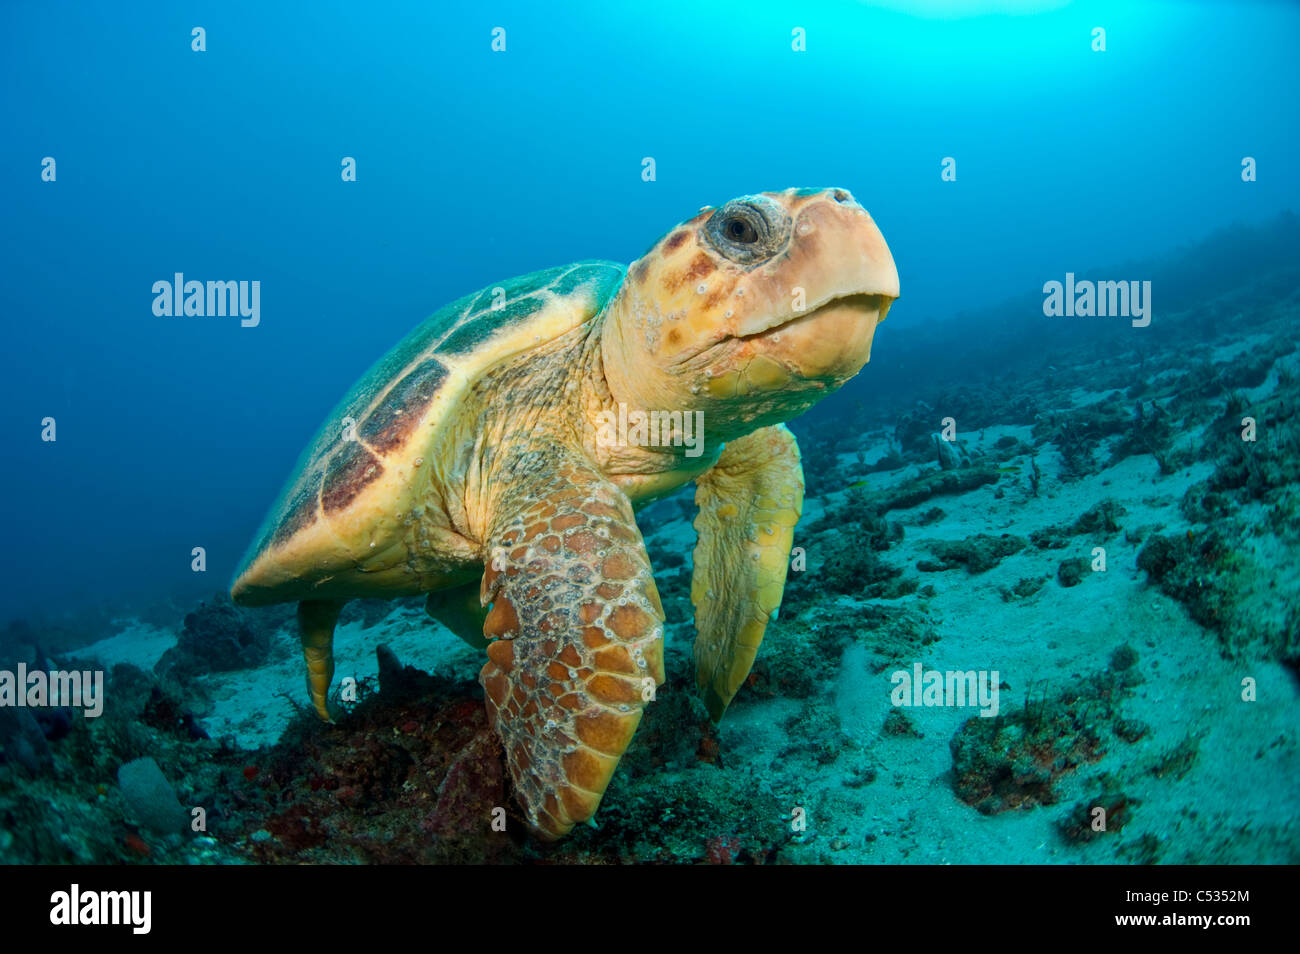 Endangered Loggerhead Sea Turtle Caretta Caretta